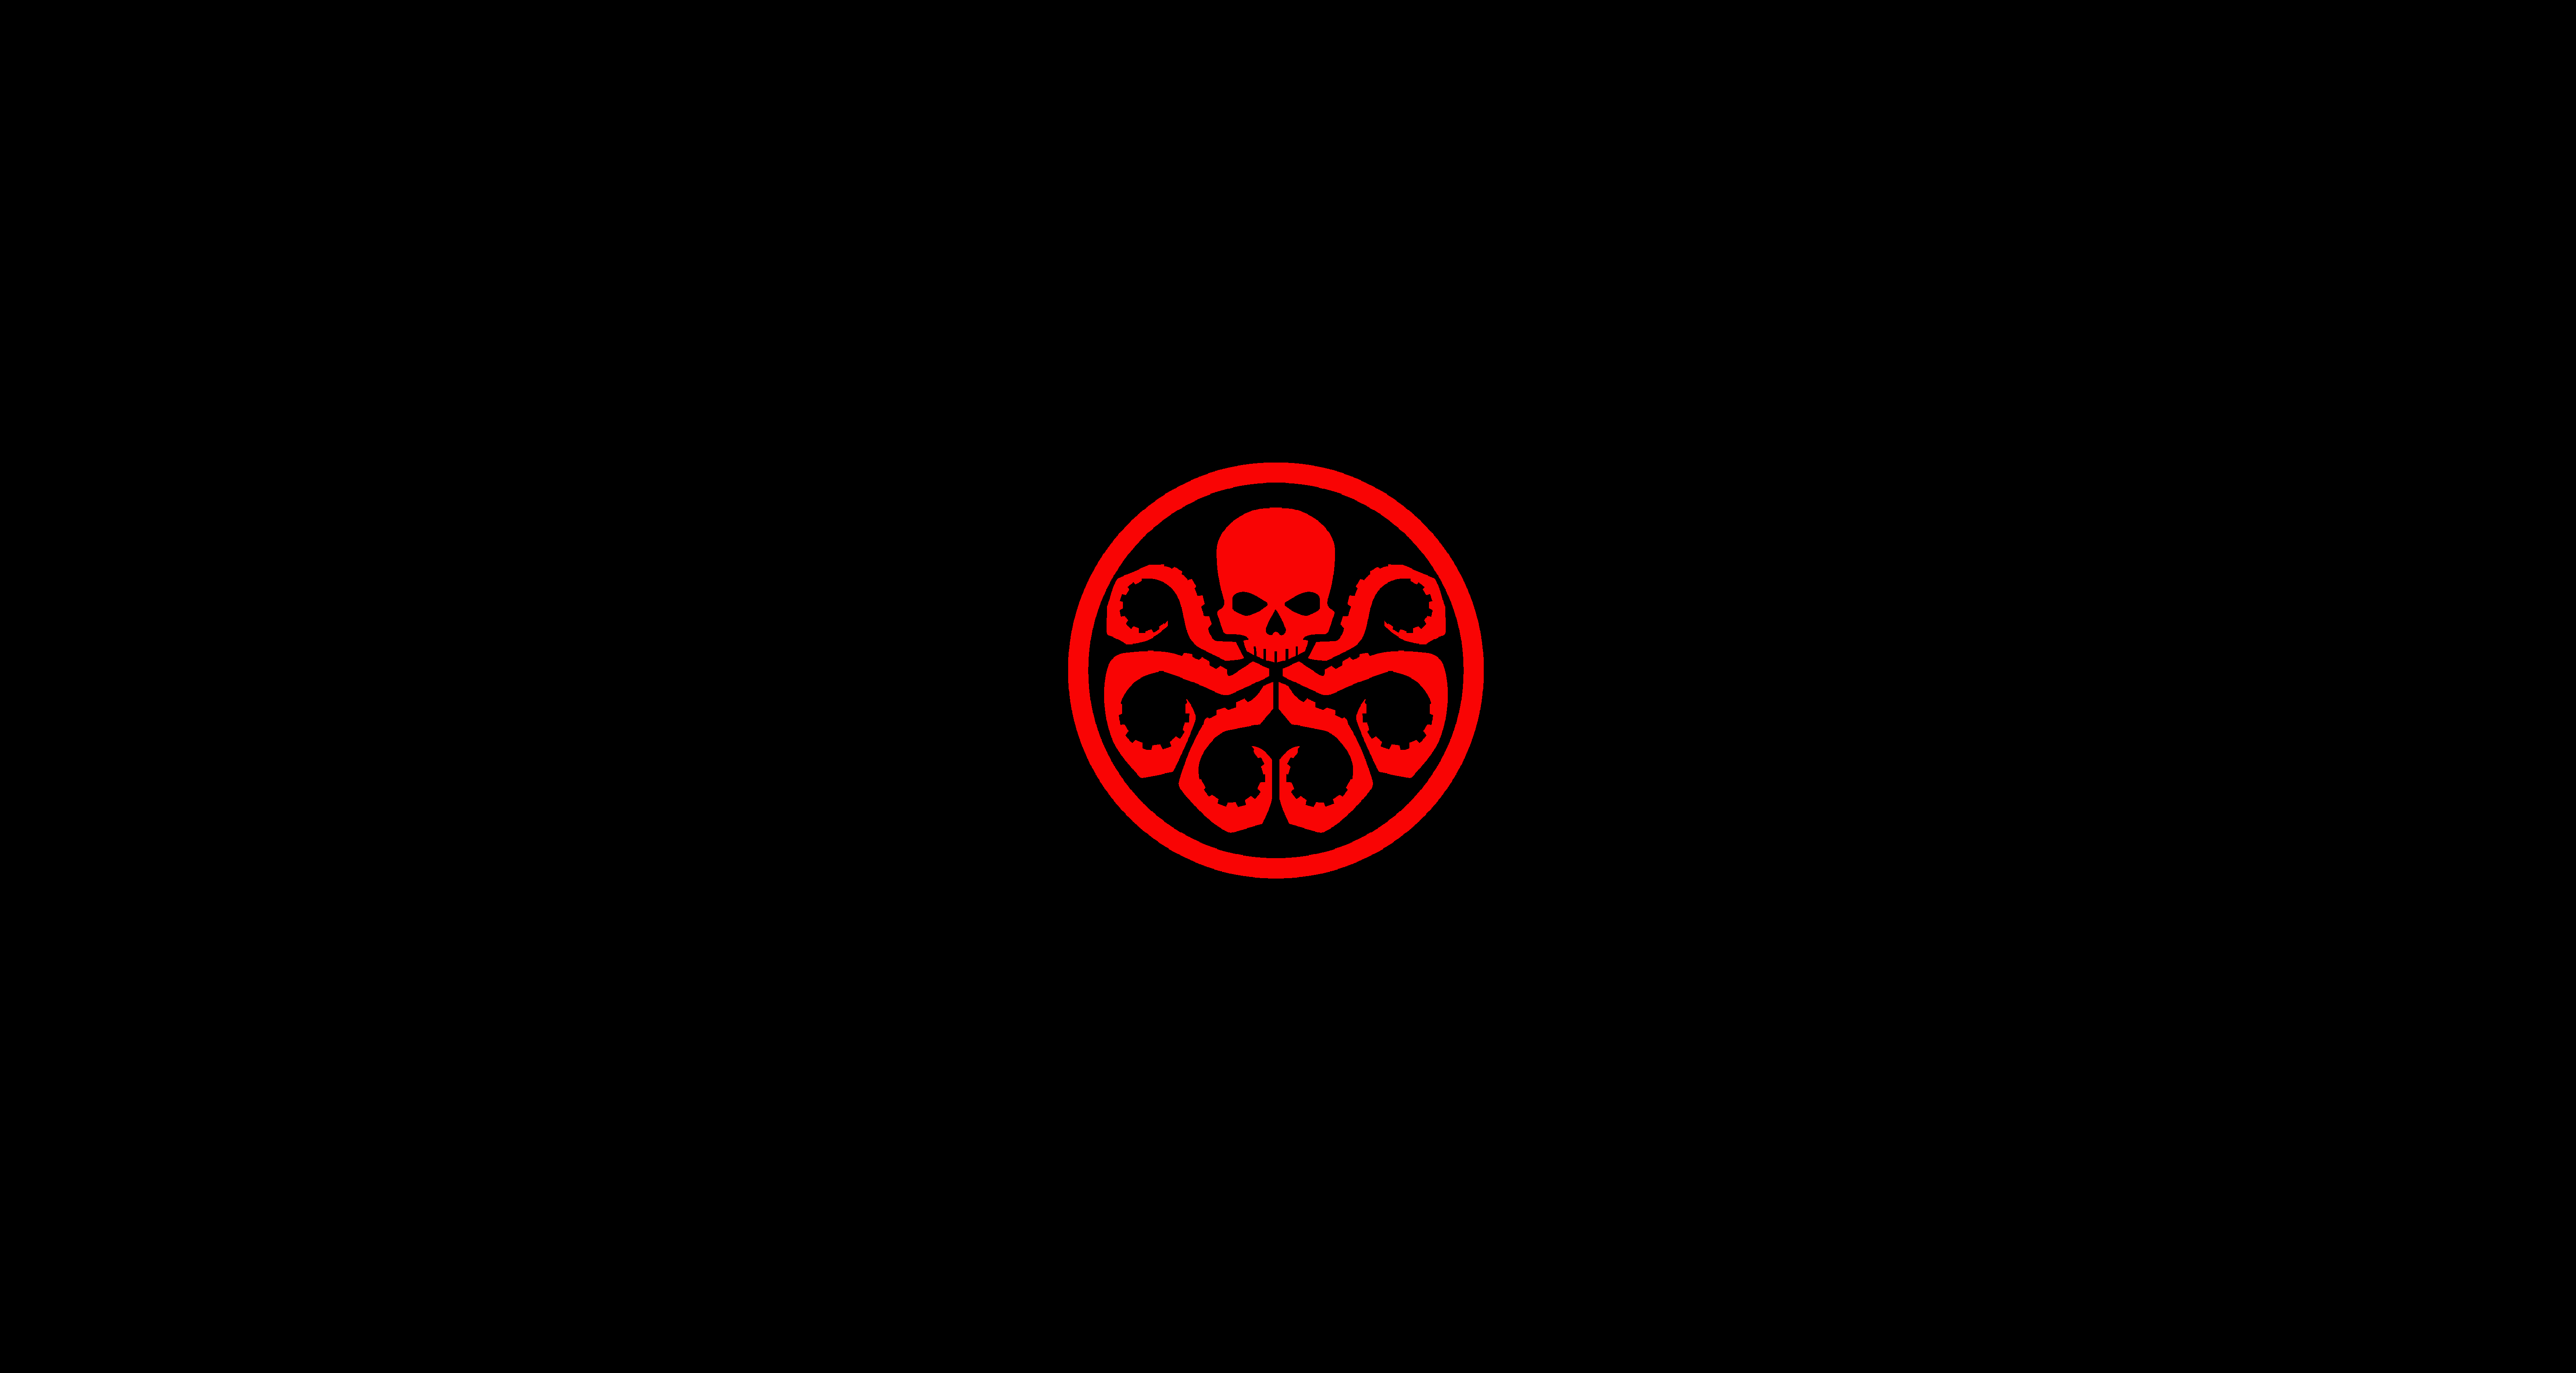 Minimalistic HYDRA Marvel Wallpaper I Made After Not Finding One Liked